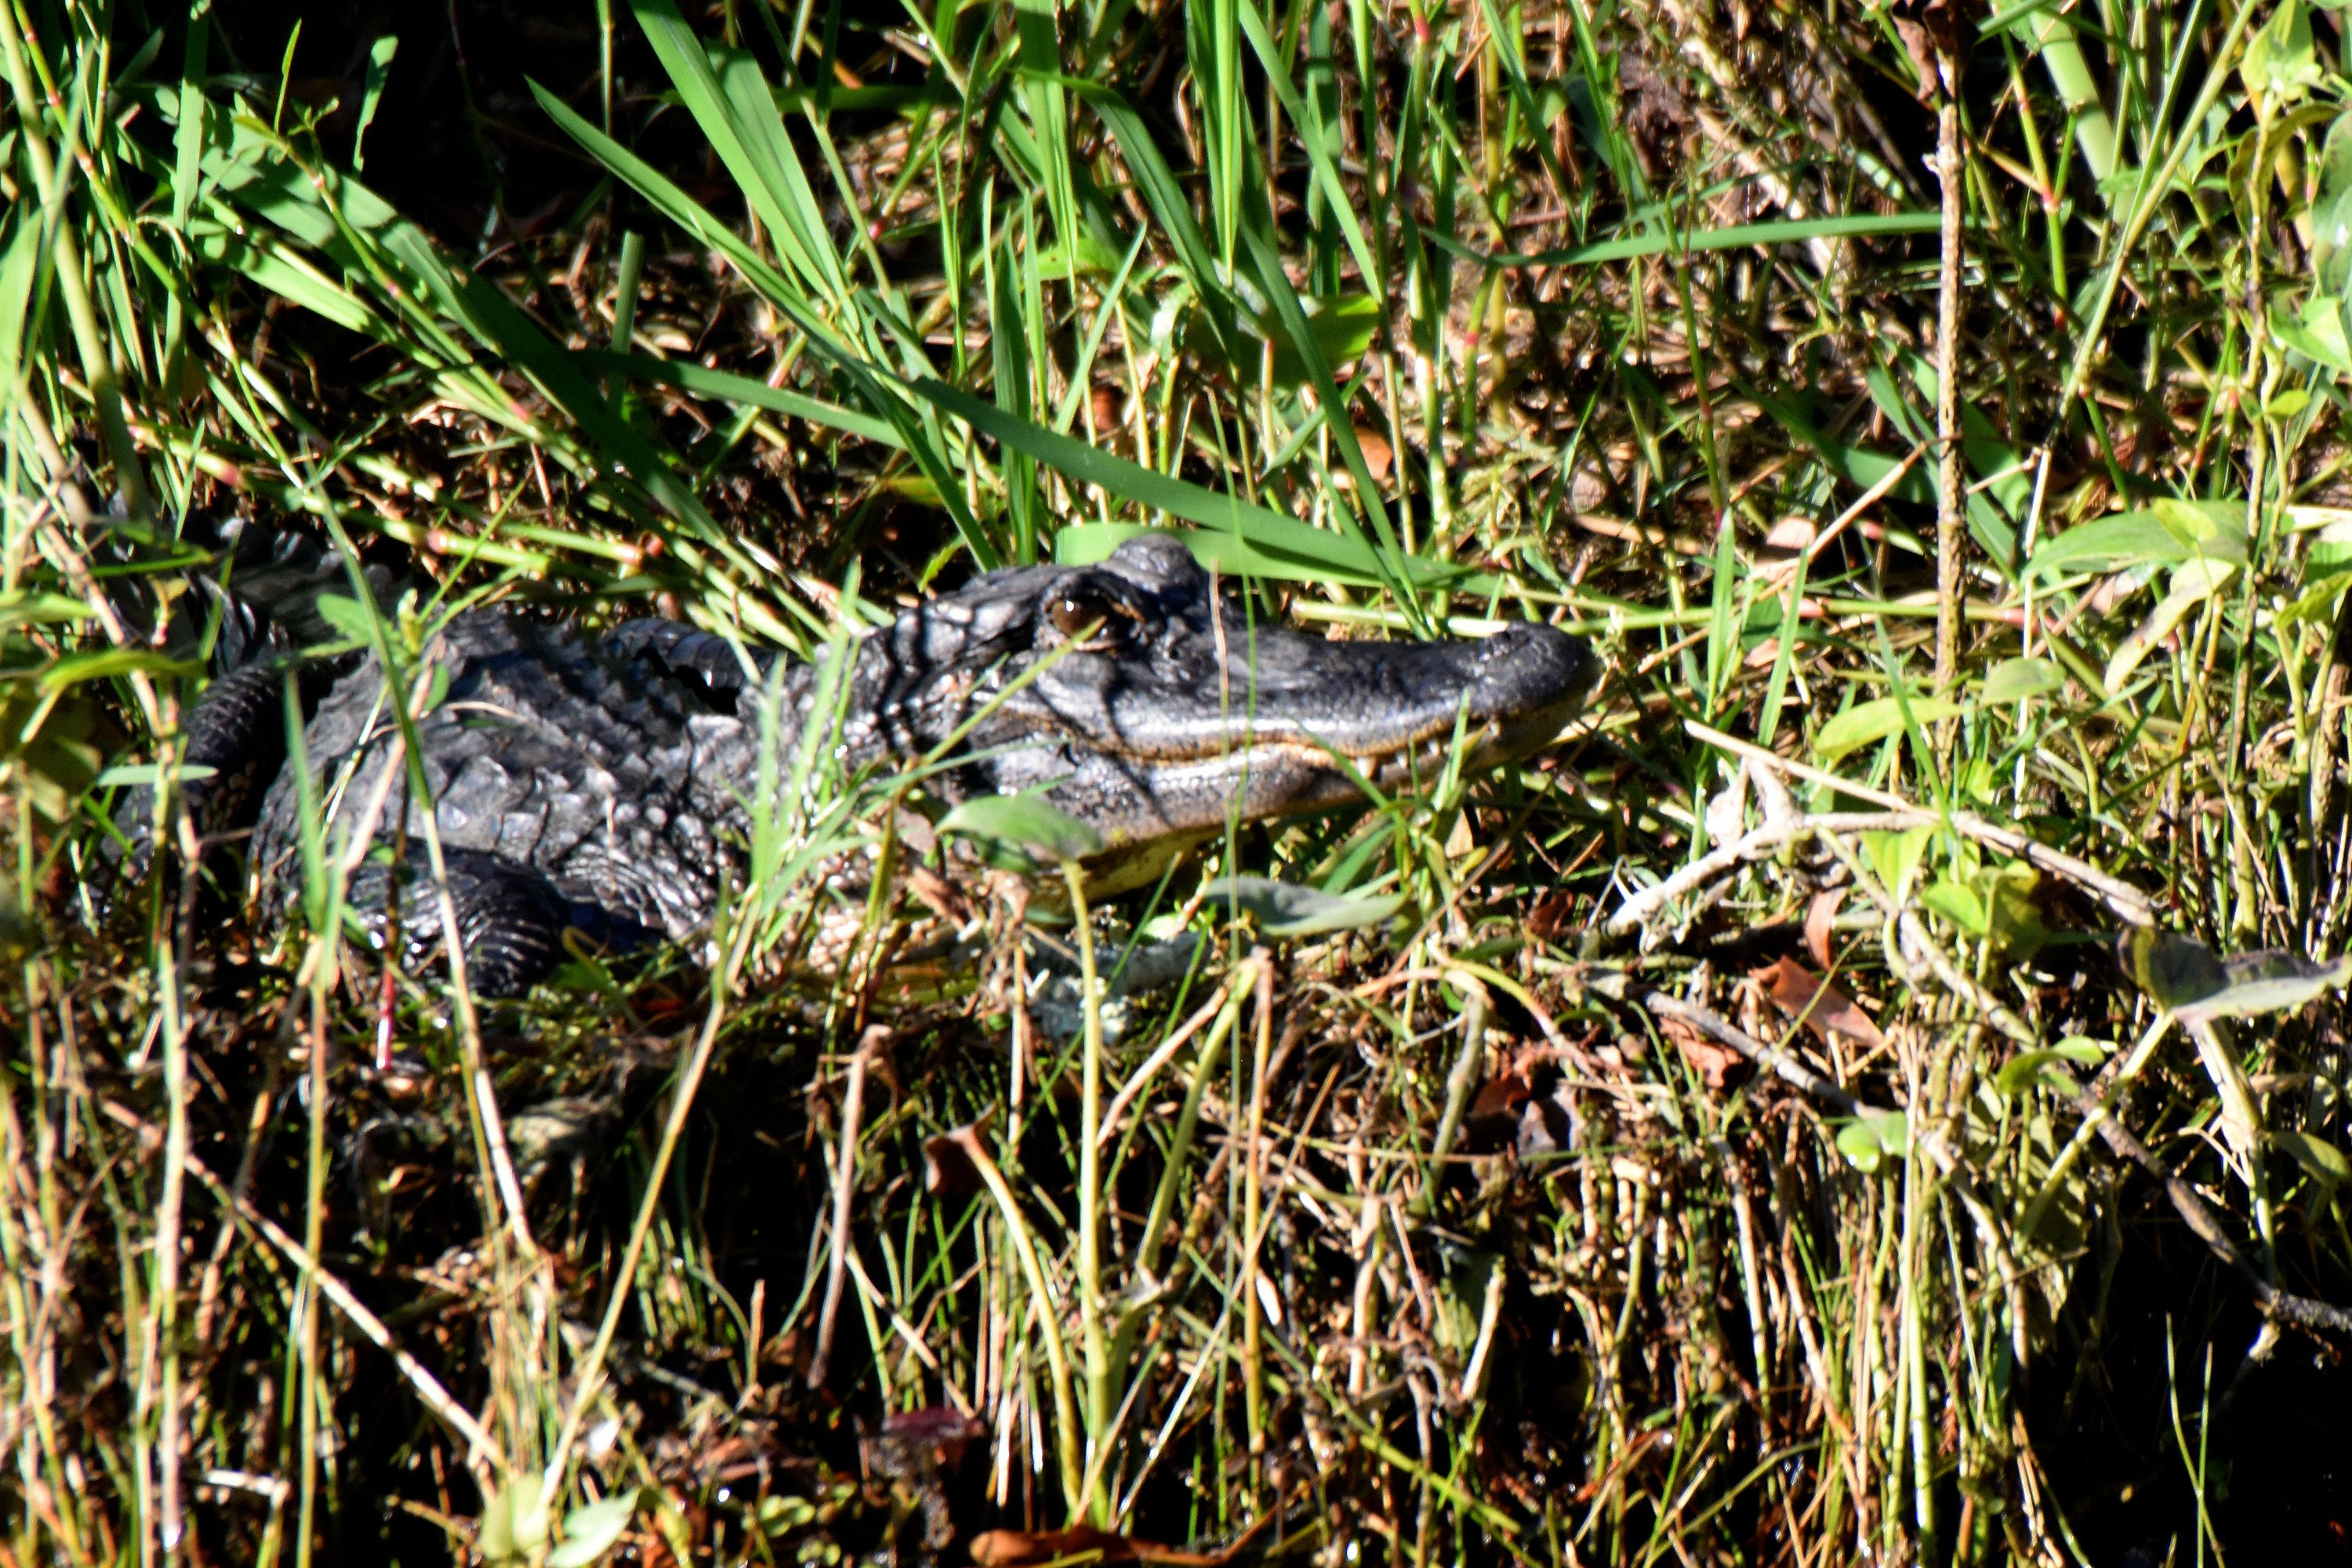 Alligator spotted in a swamp in New Orleans